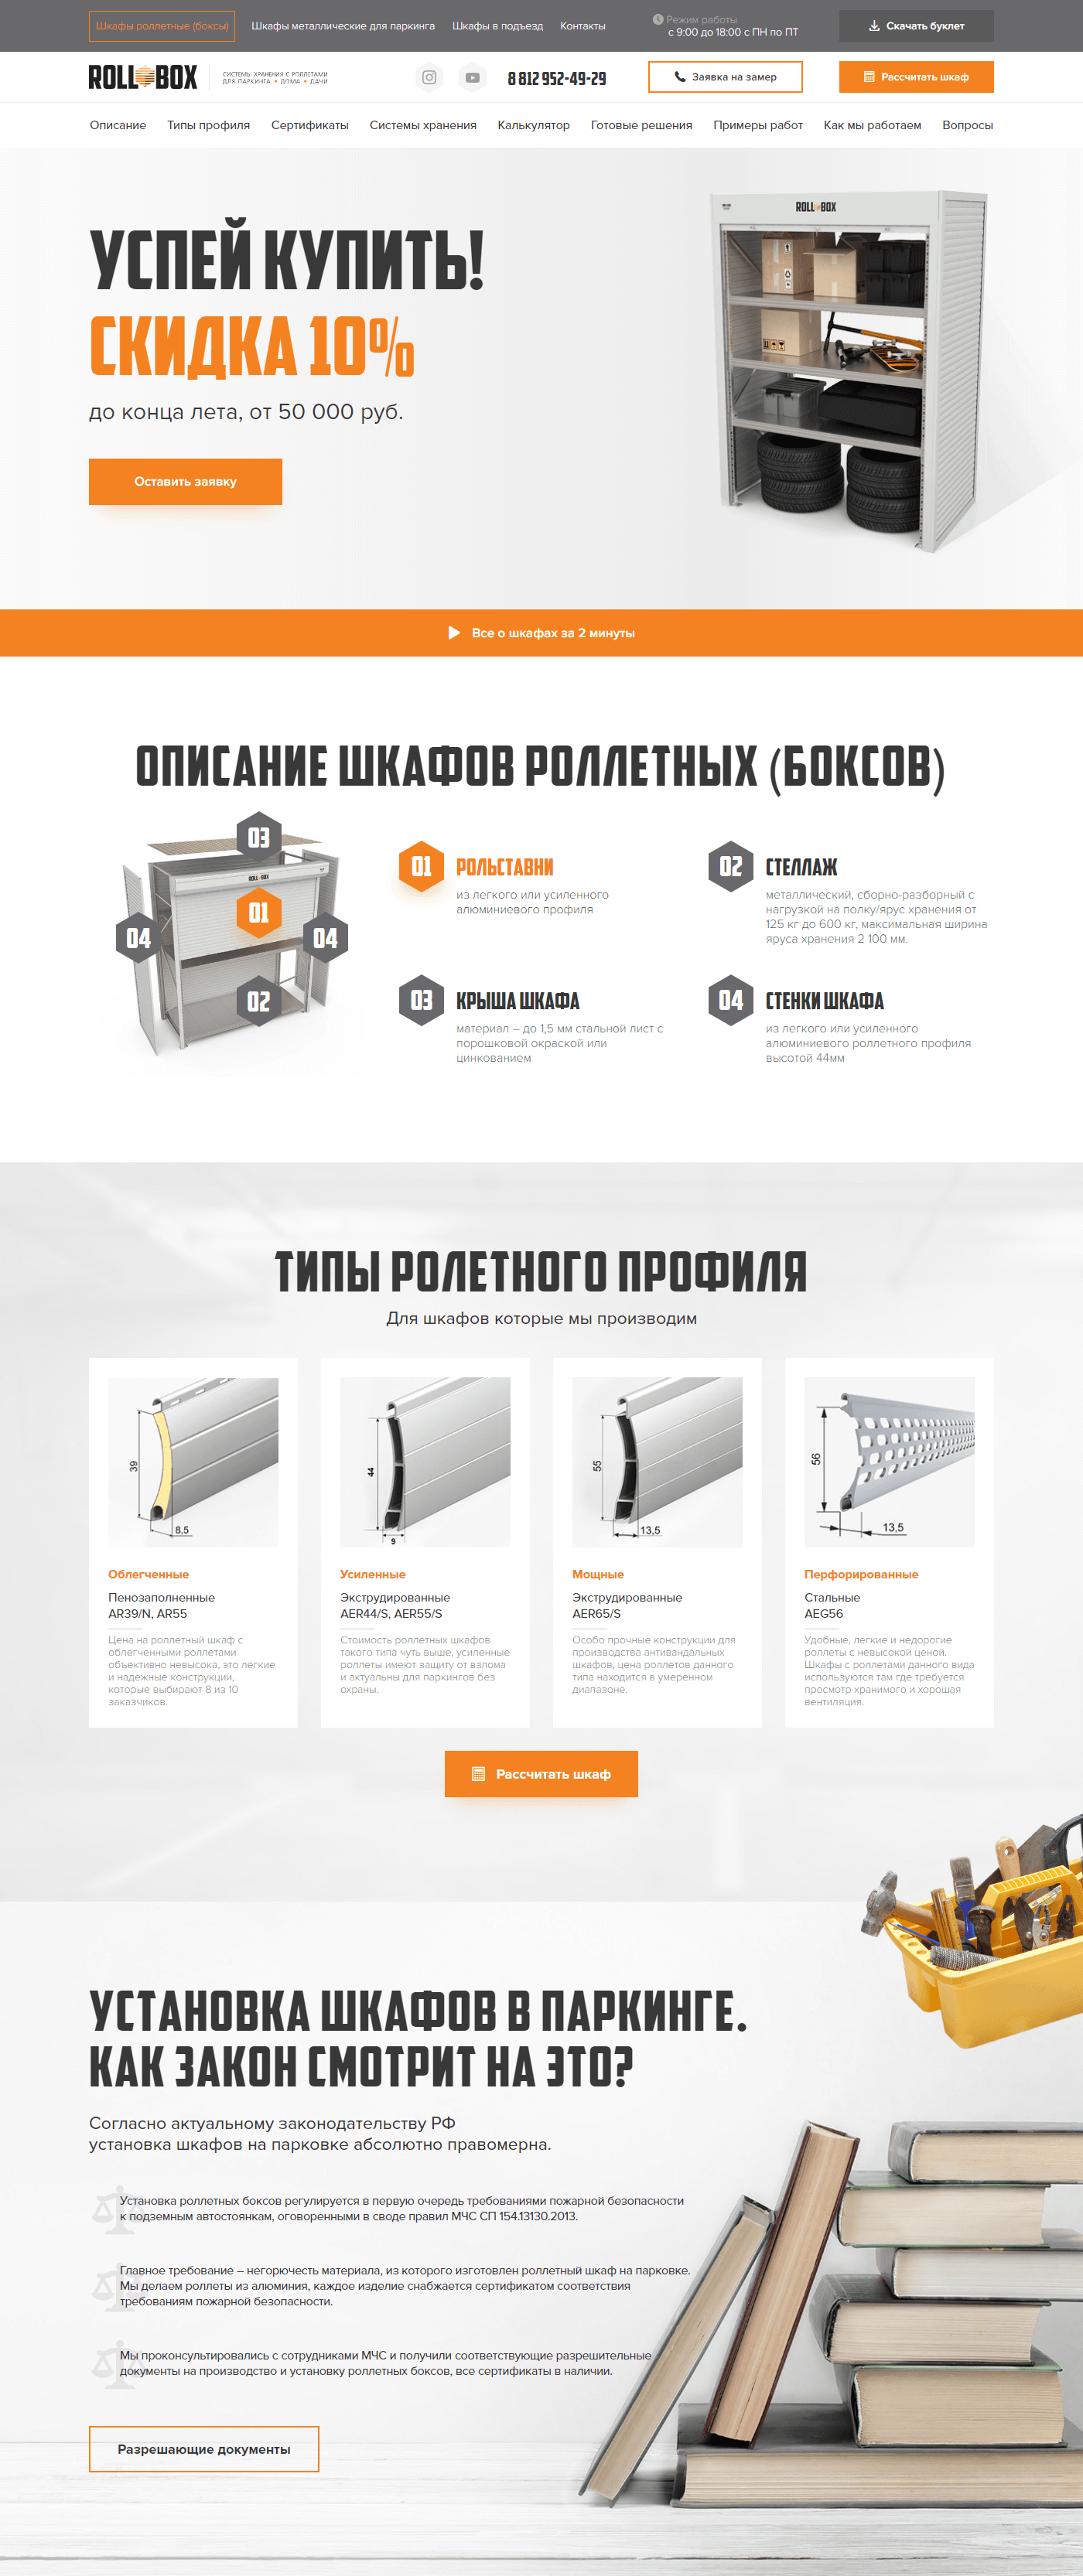 https://aleksinsky.ru/wp-content/uploads/2019/07/rollbox1.png